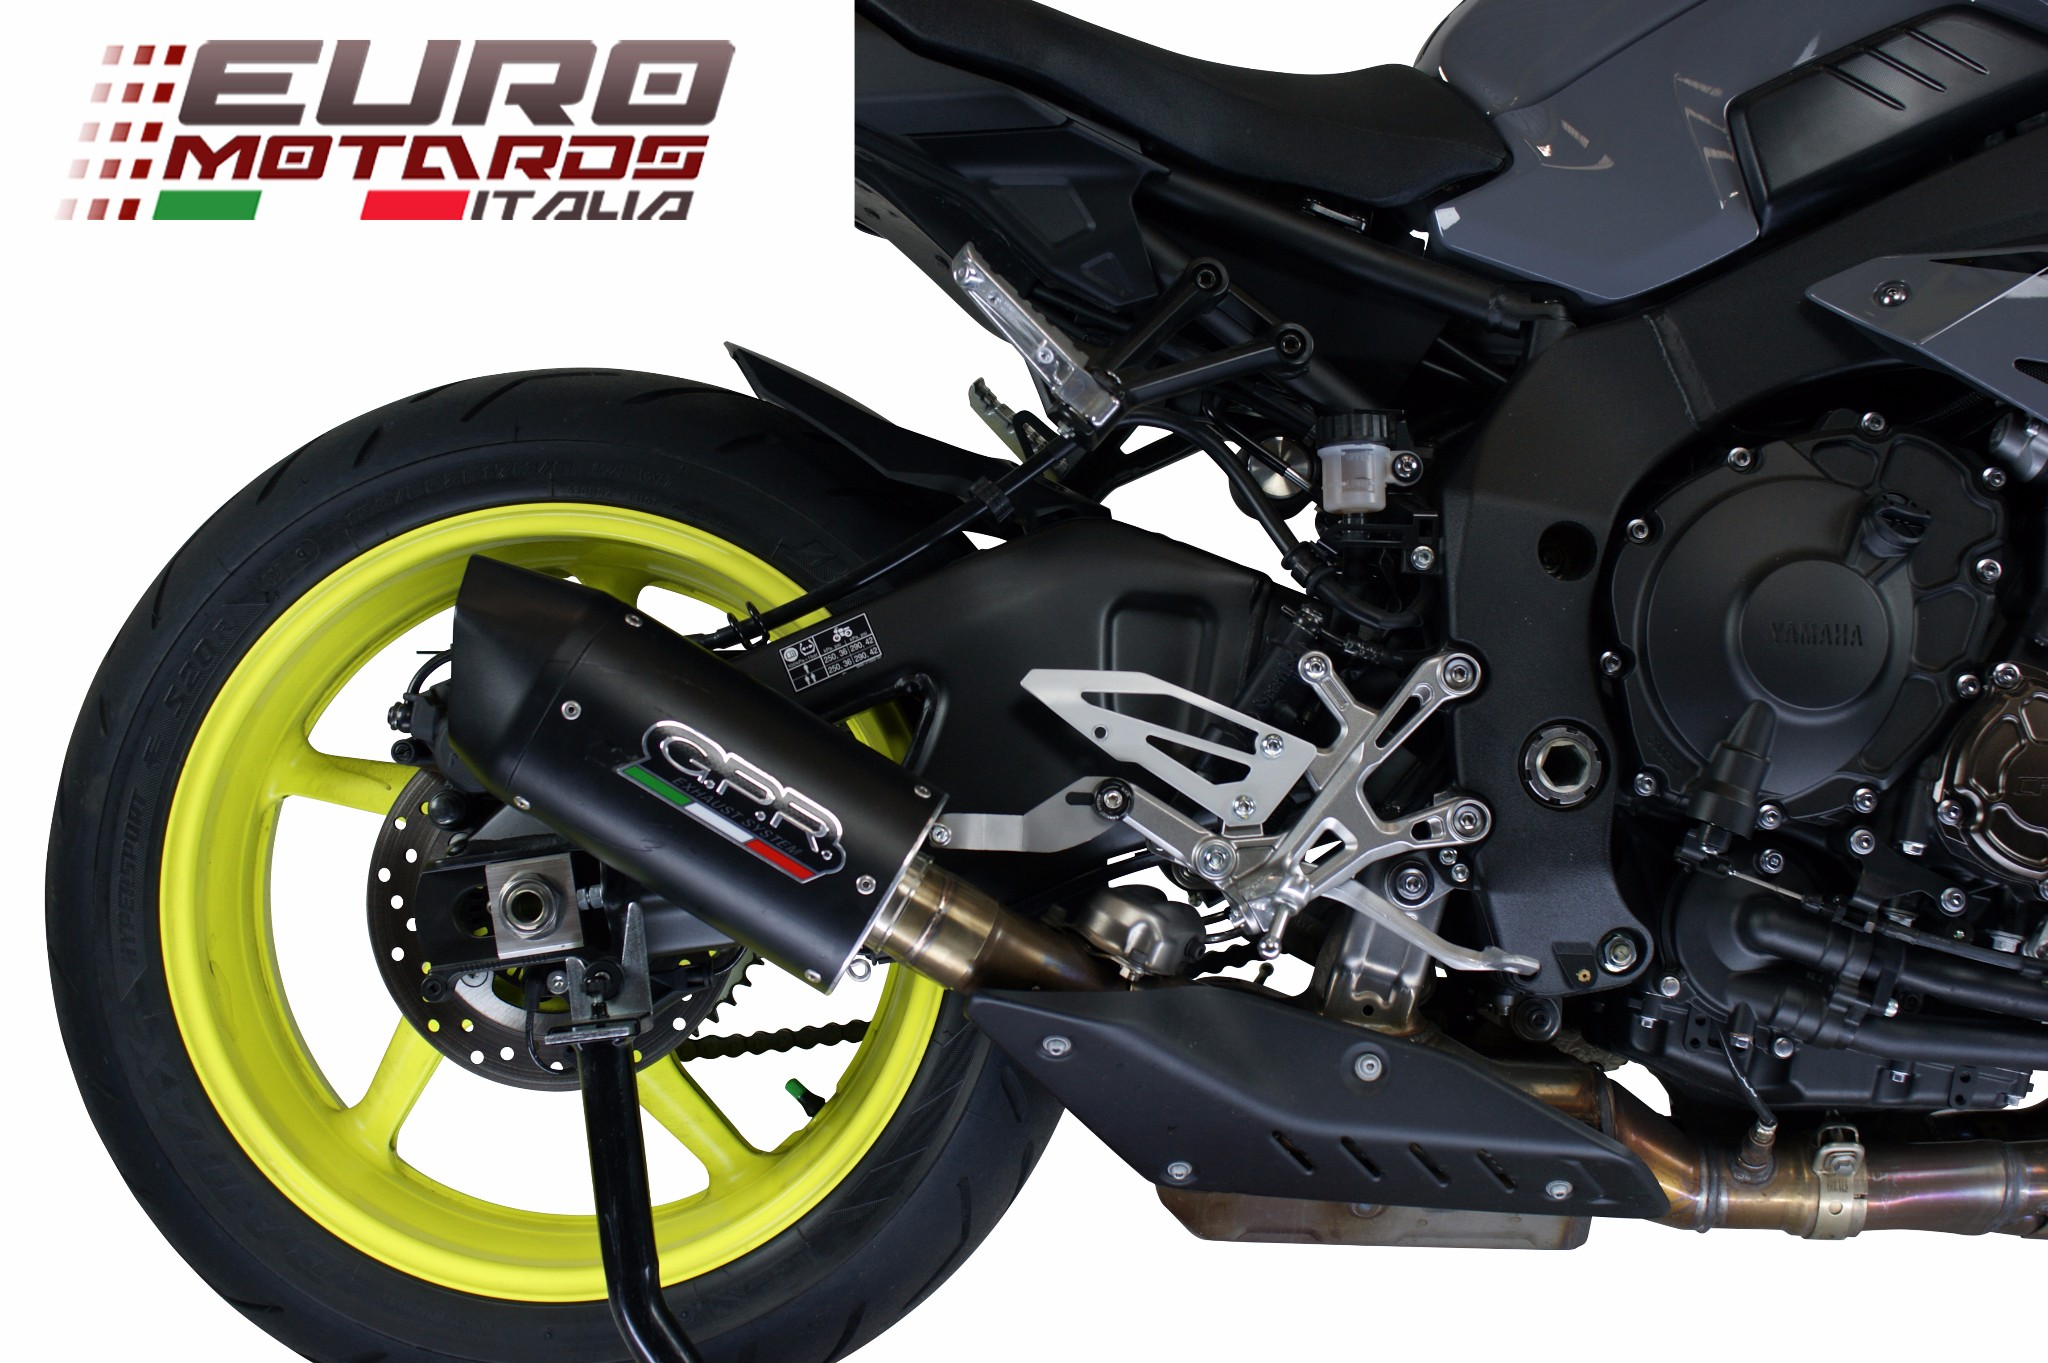 Details About Yamaha Mt10 Fz10 2017 2019 Gpr Exhaust Slip On Silencer Furore Nero Road Legal